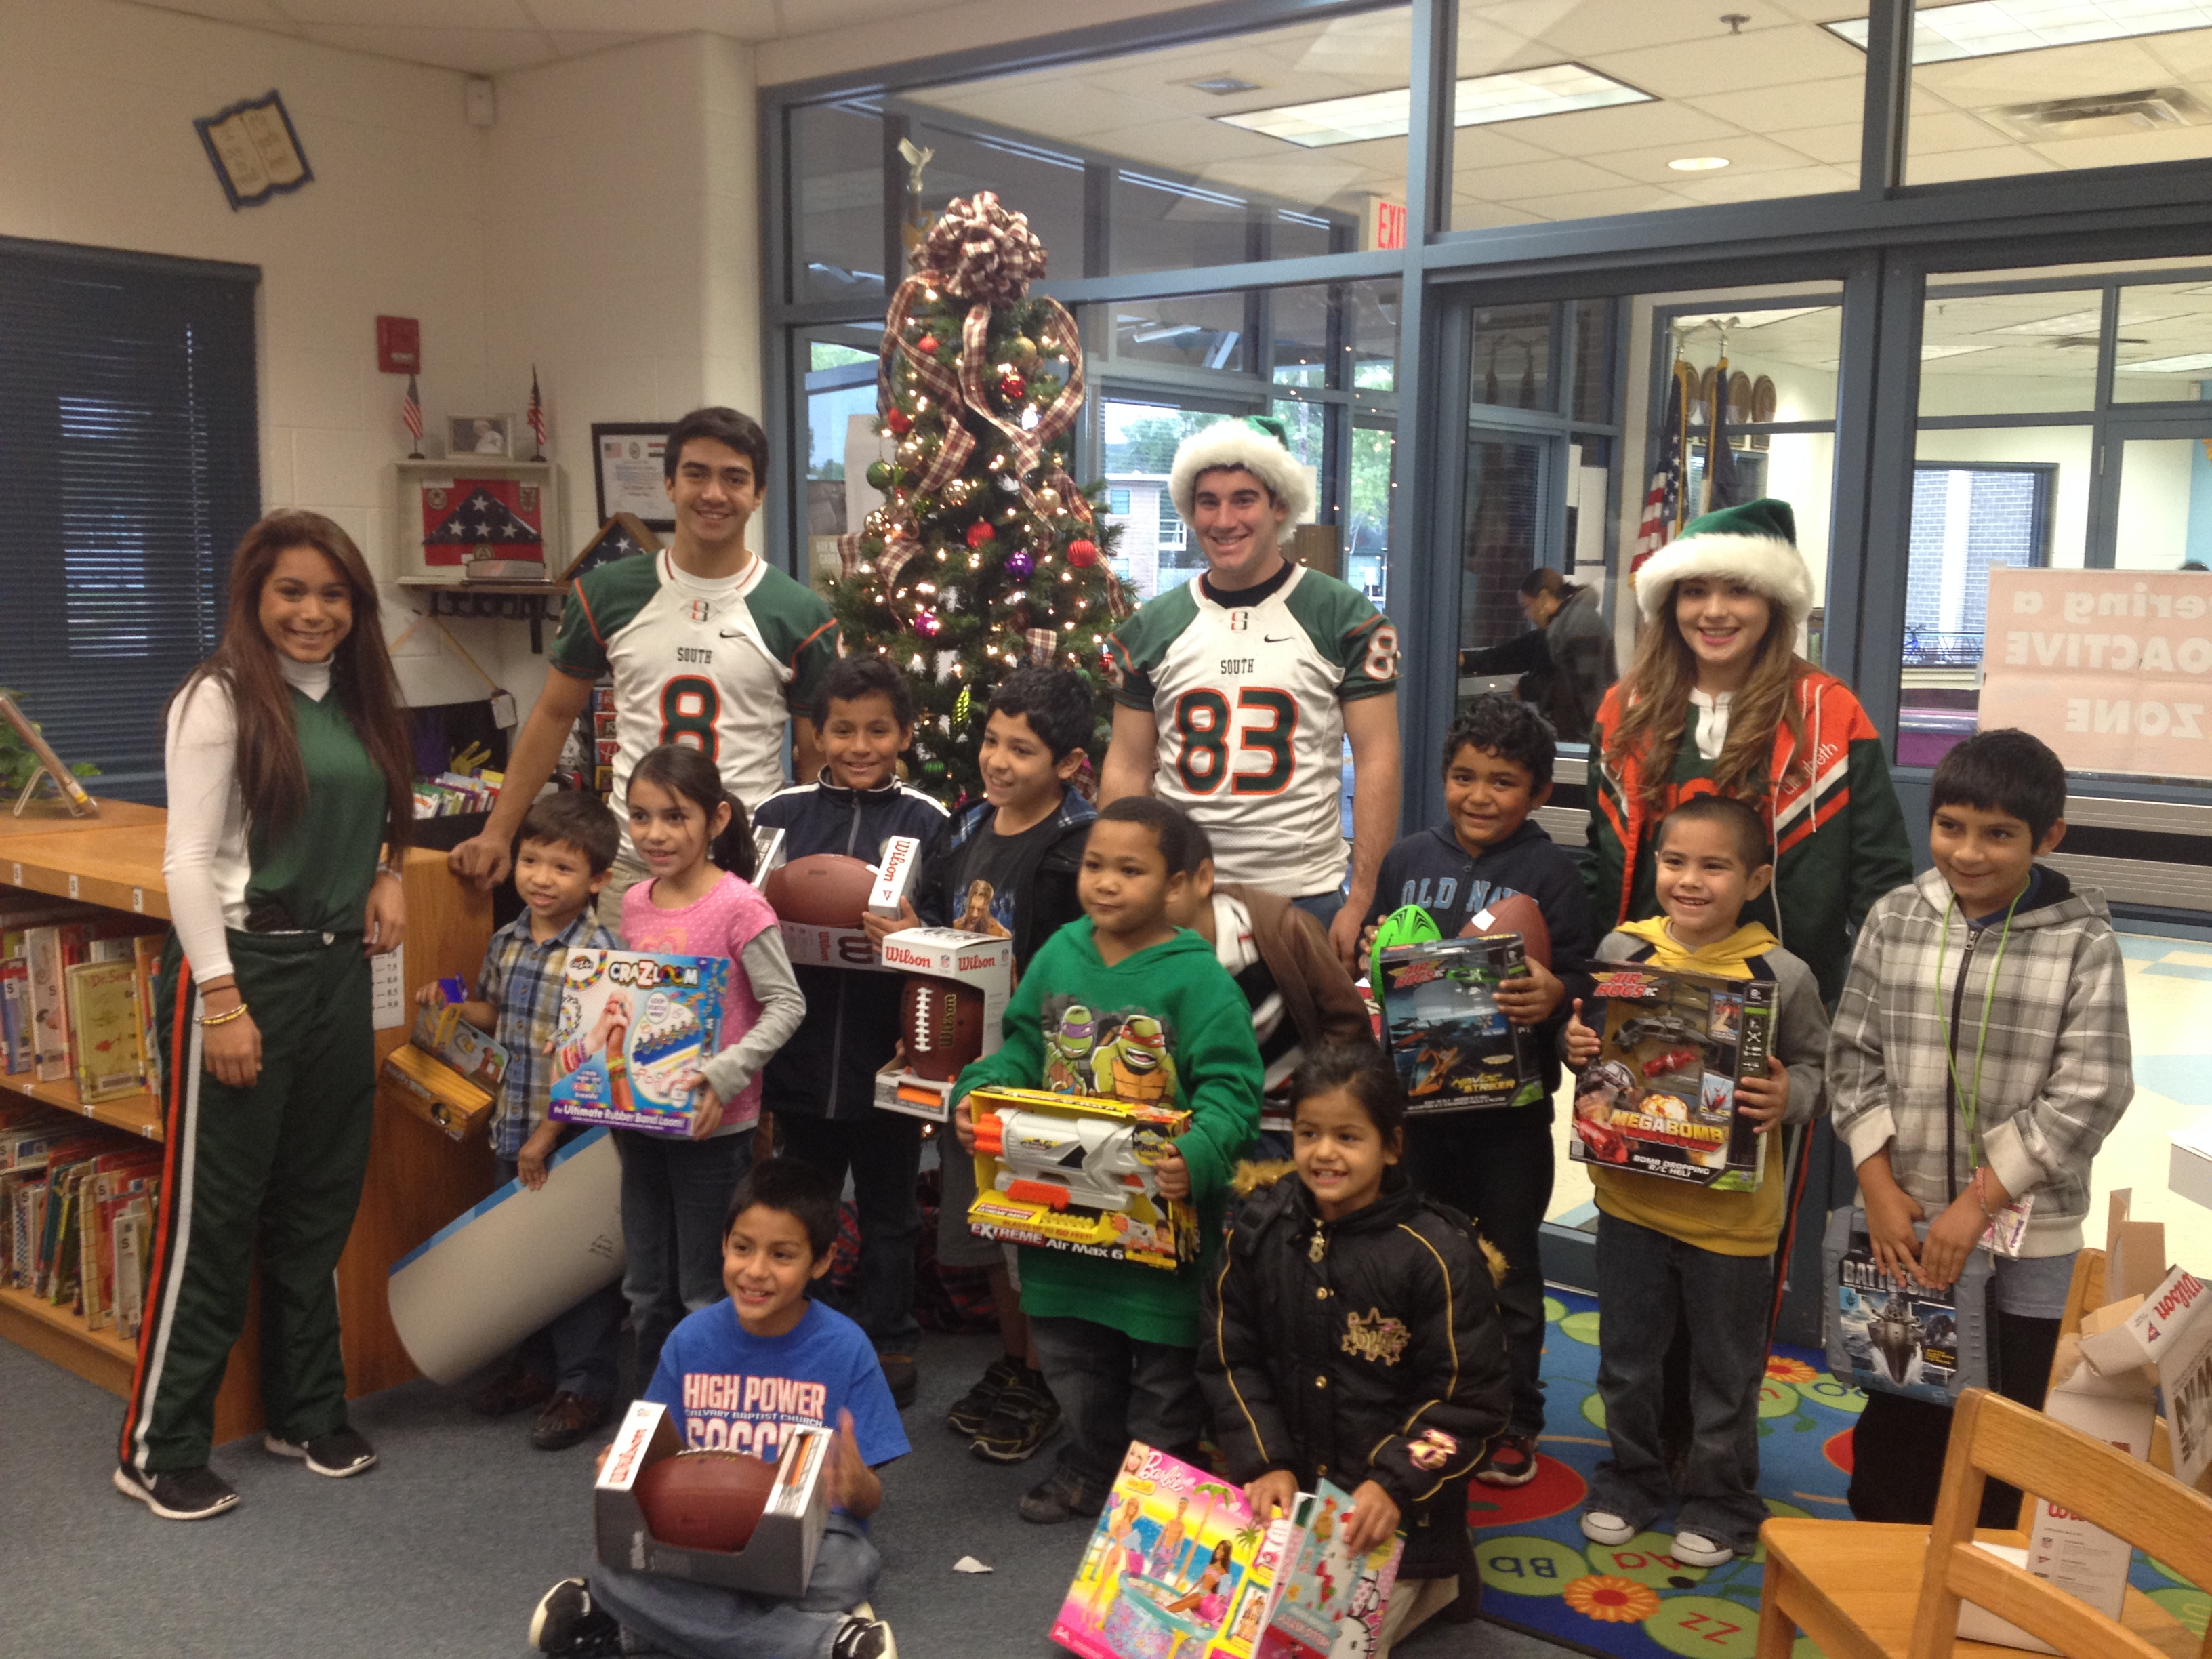 HHSS, Travis and organizations come together to donate over 100 toys to Travis students